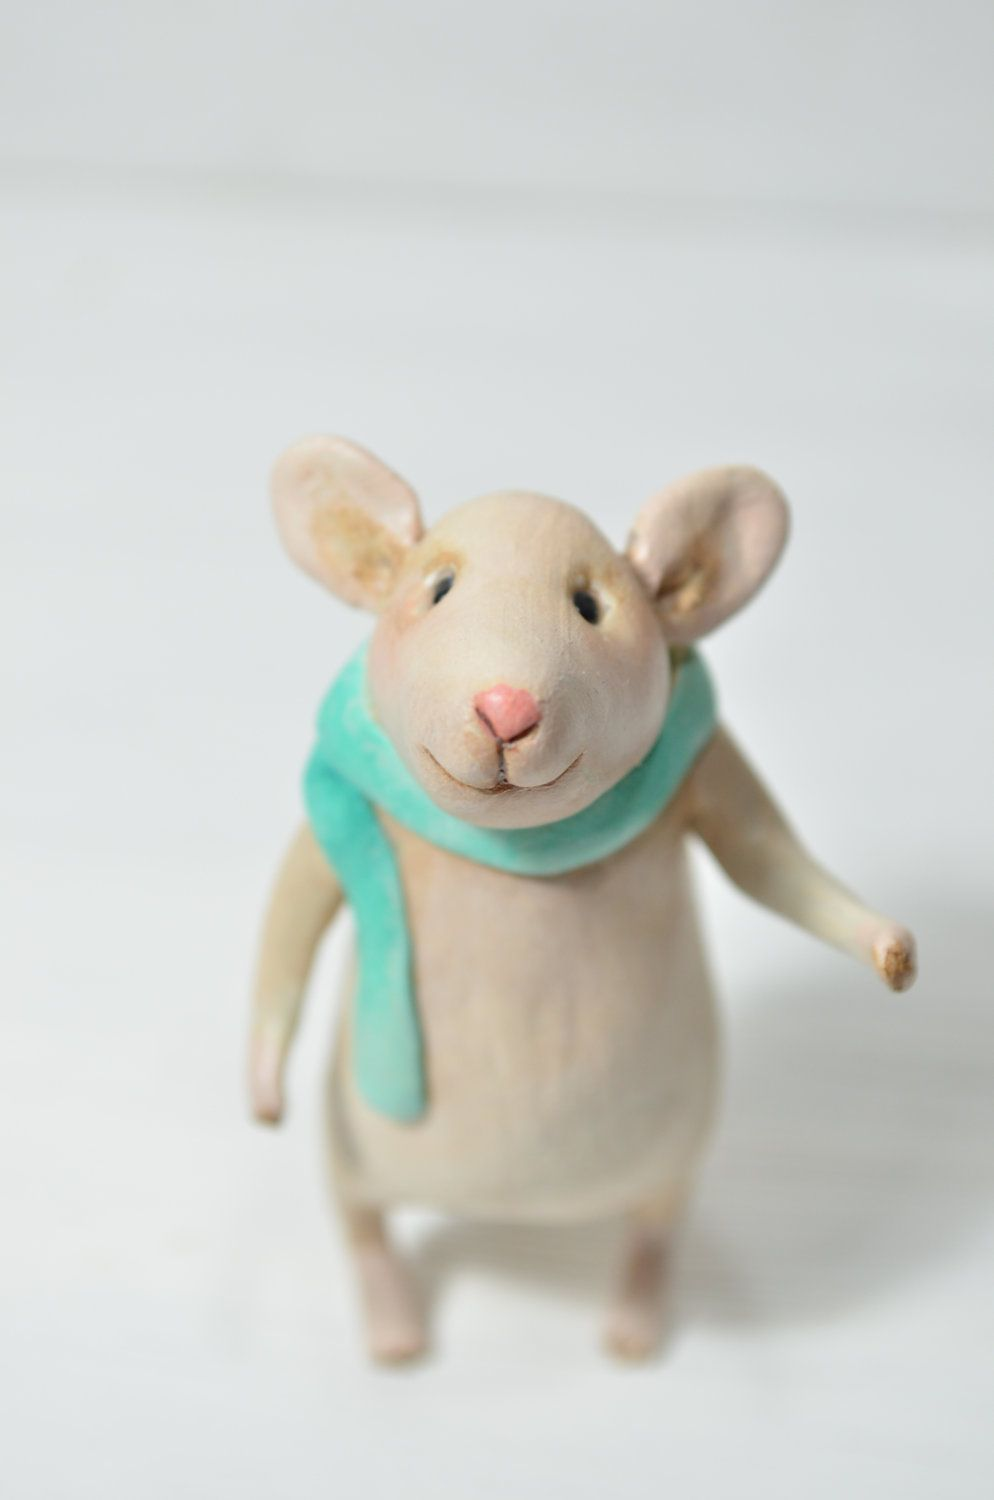 Little Mouse - Polymer Clay Animal Cute Ornament | Fimo ...